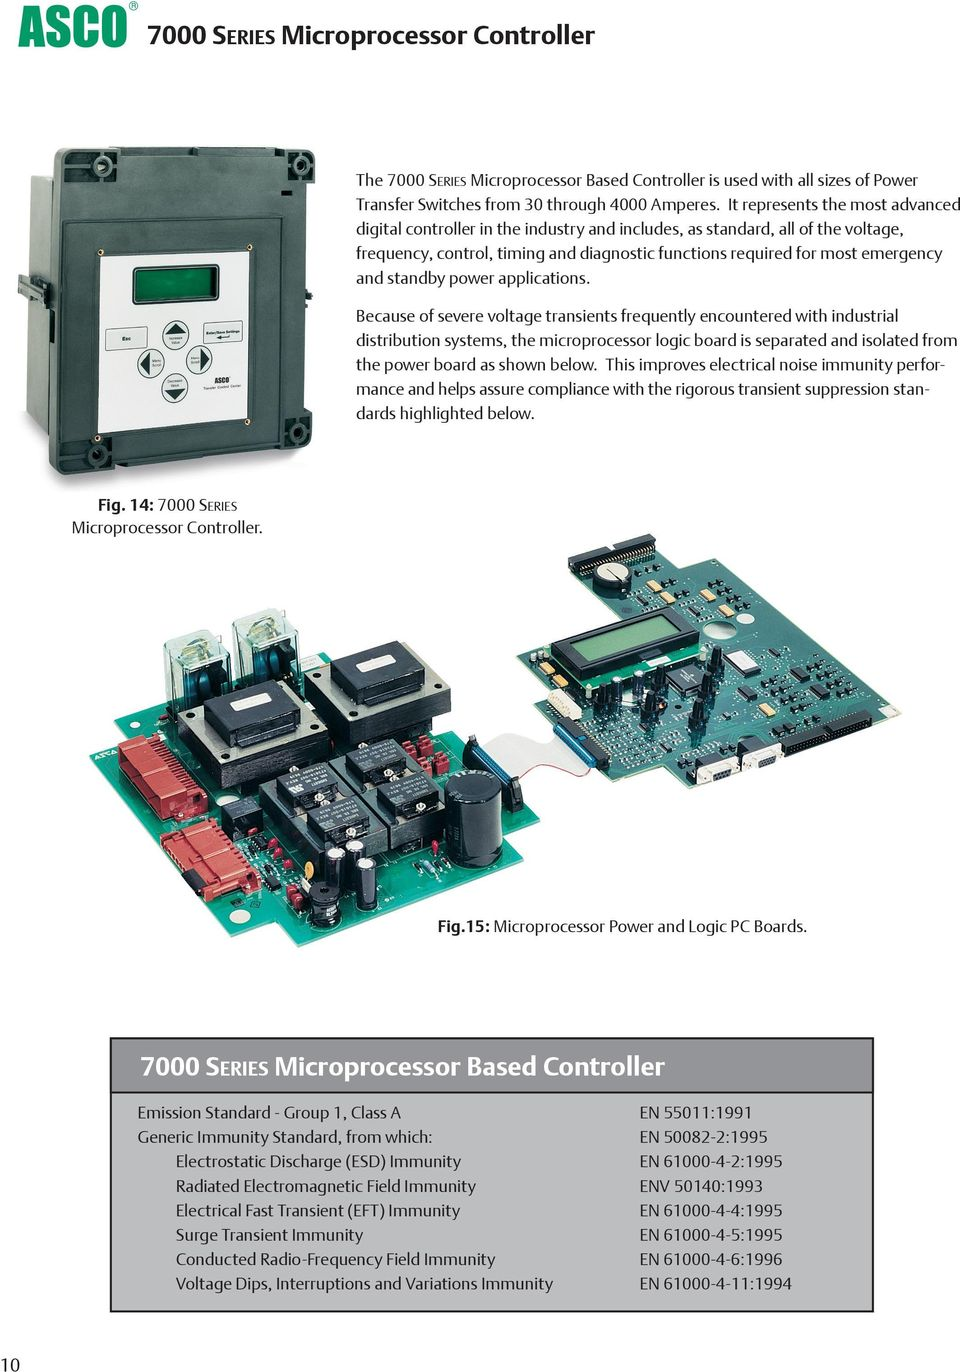 Asco 7000 Series Power Transfer Switches Pdf 4 Circuit Switch Standby Applications